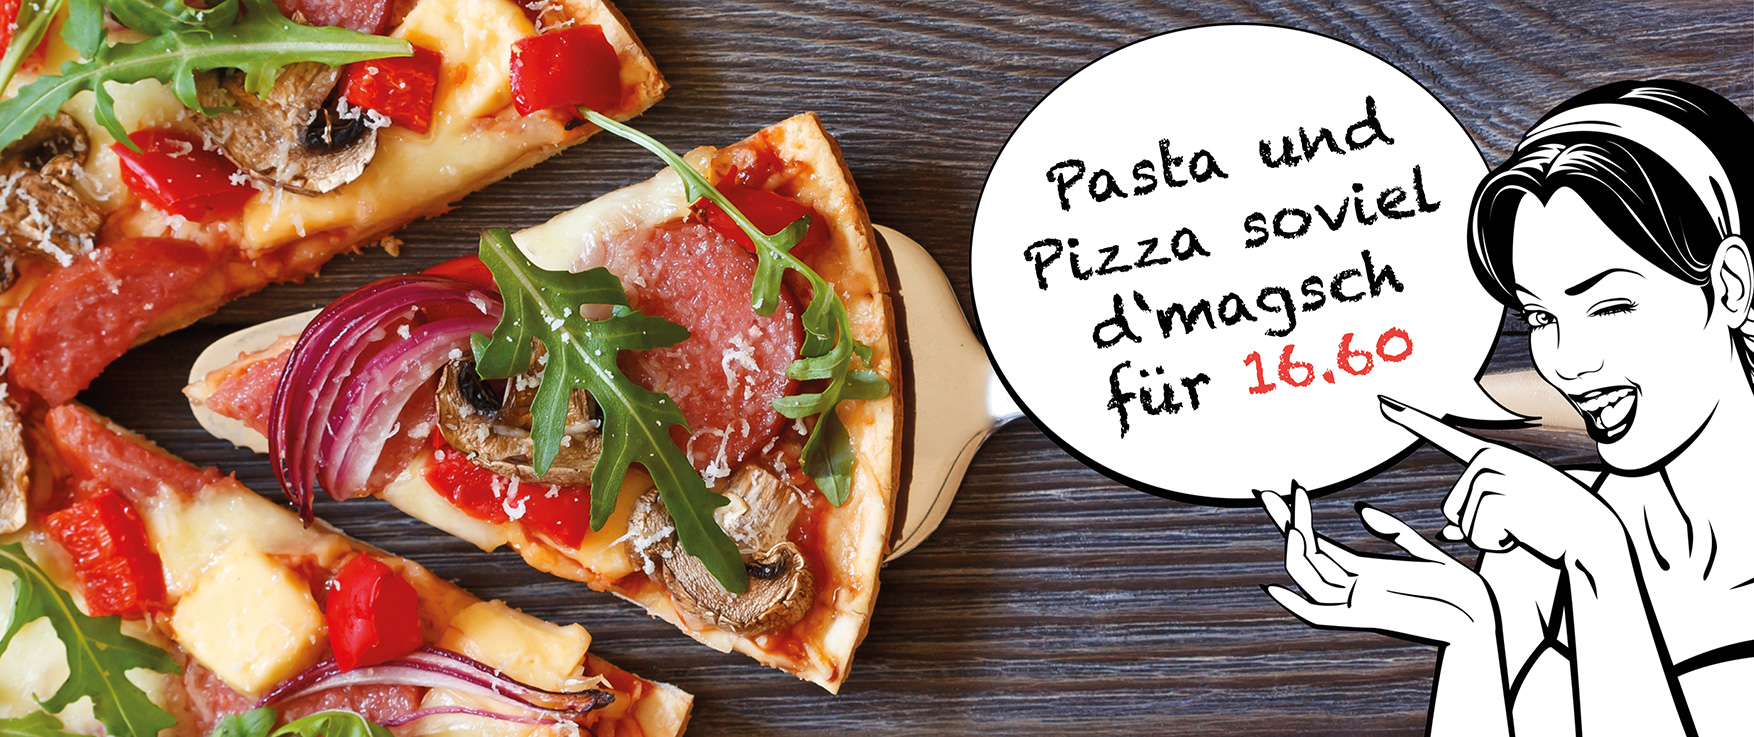 Jobs bei Pasta e Pizza